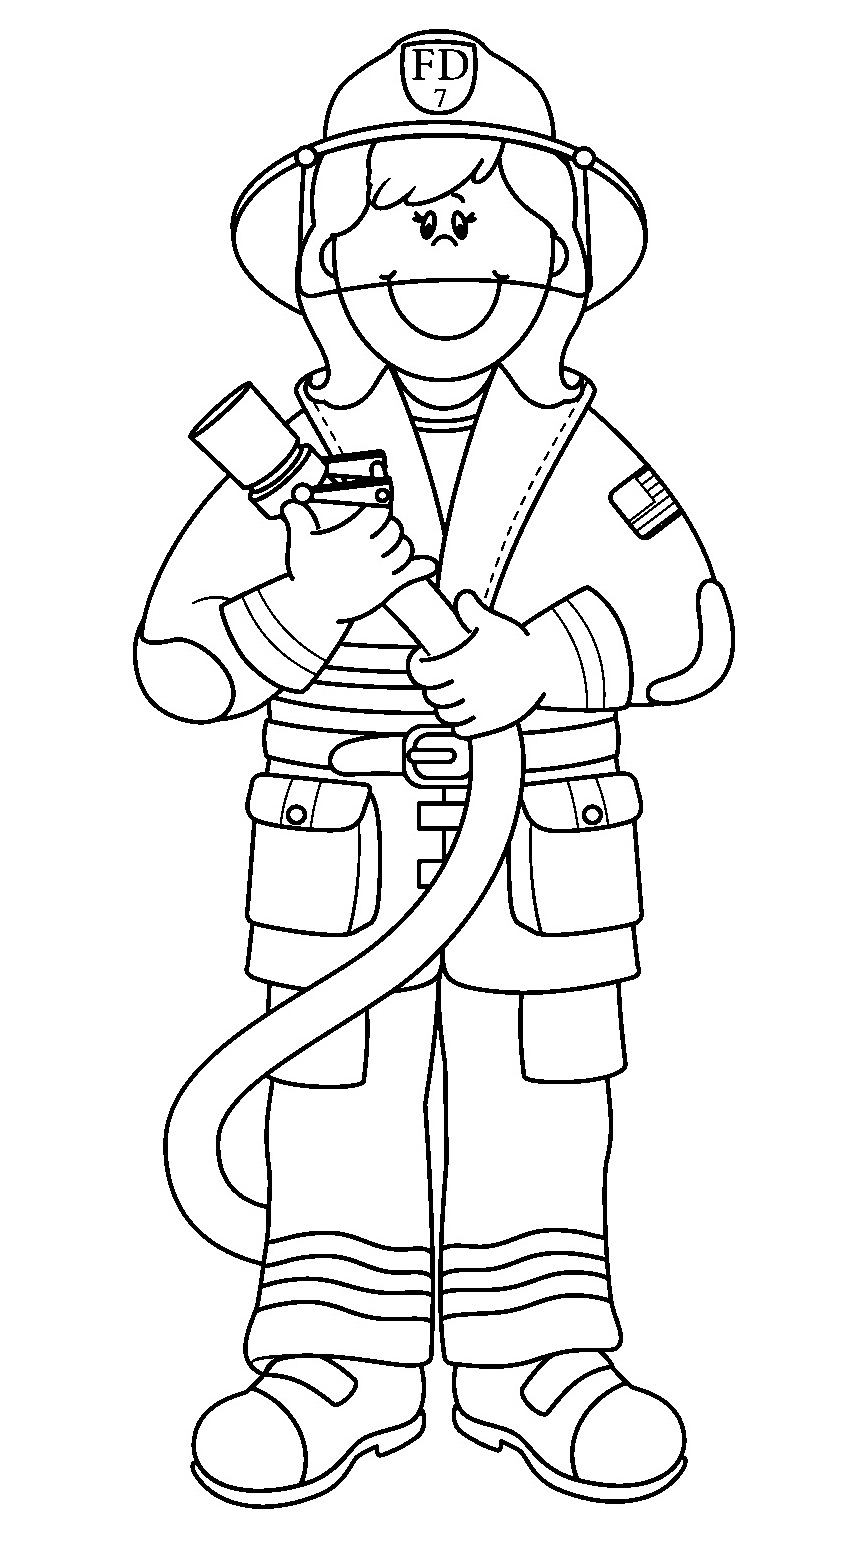 852x1544 Printable Fireman Coloring Pages Printable Firefighter Coloring